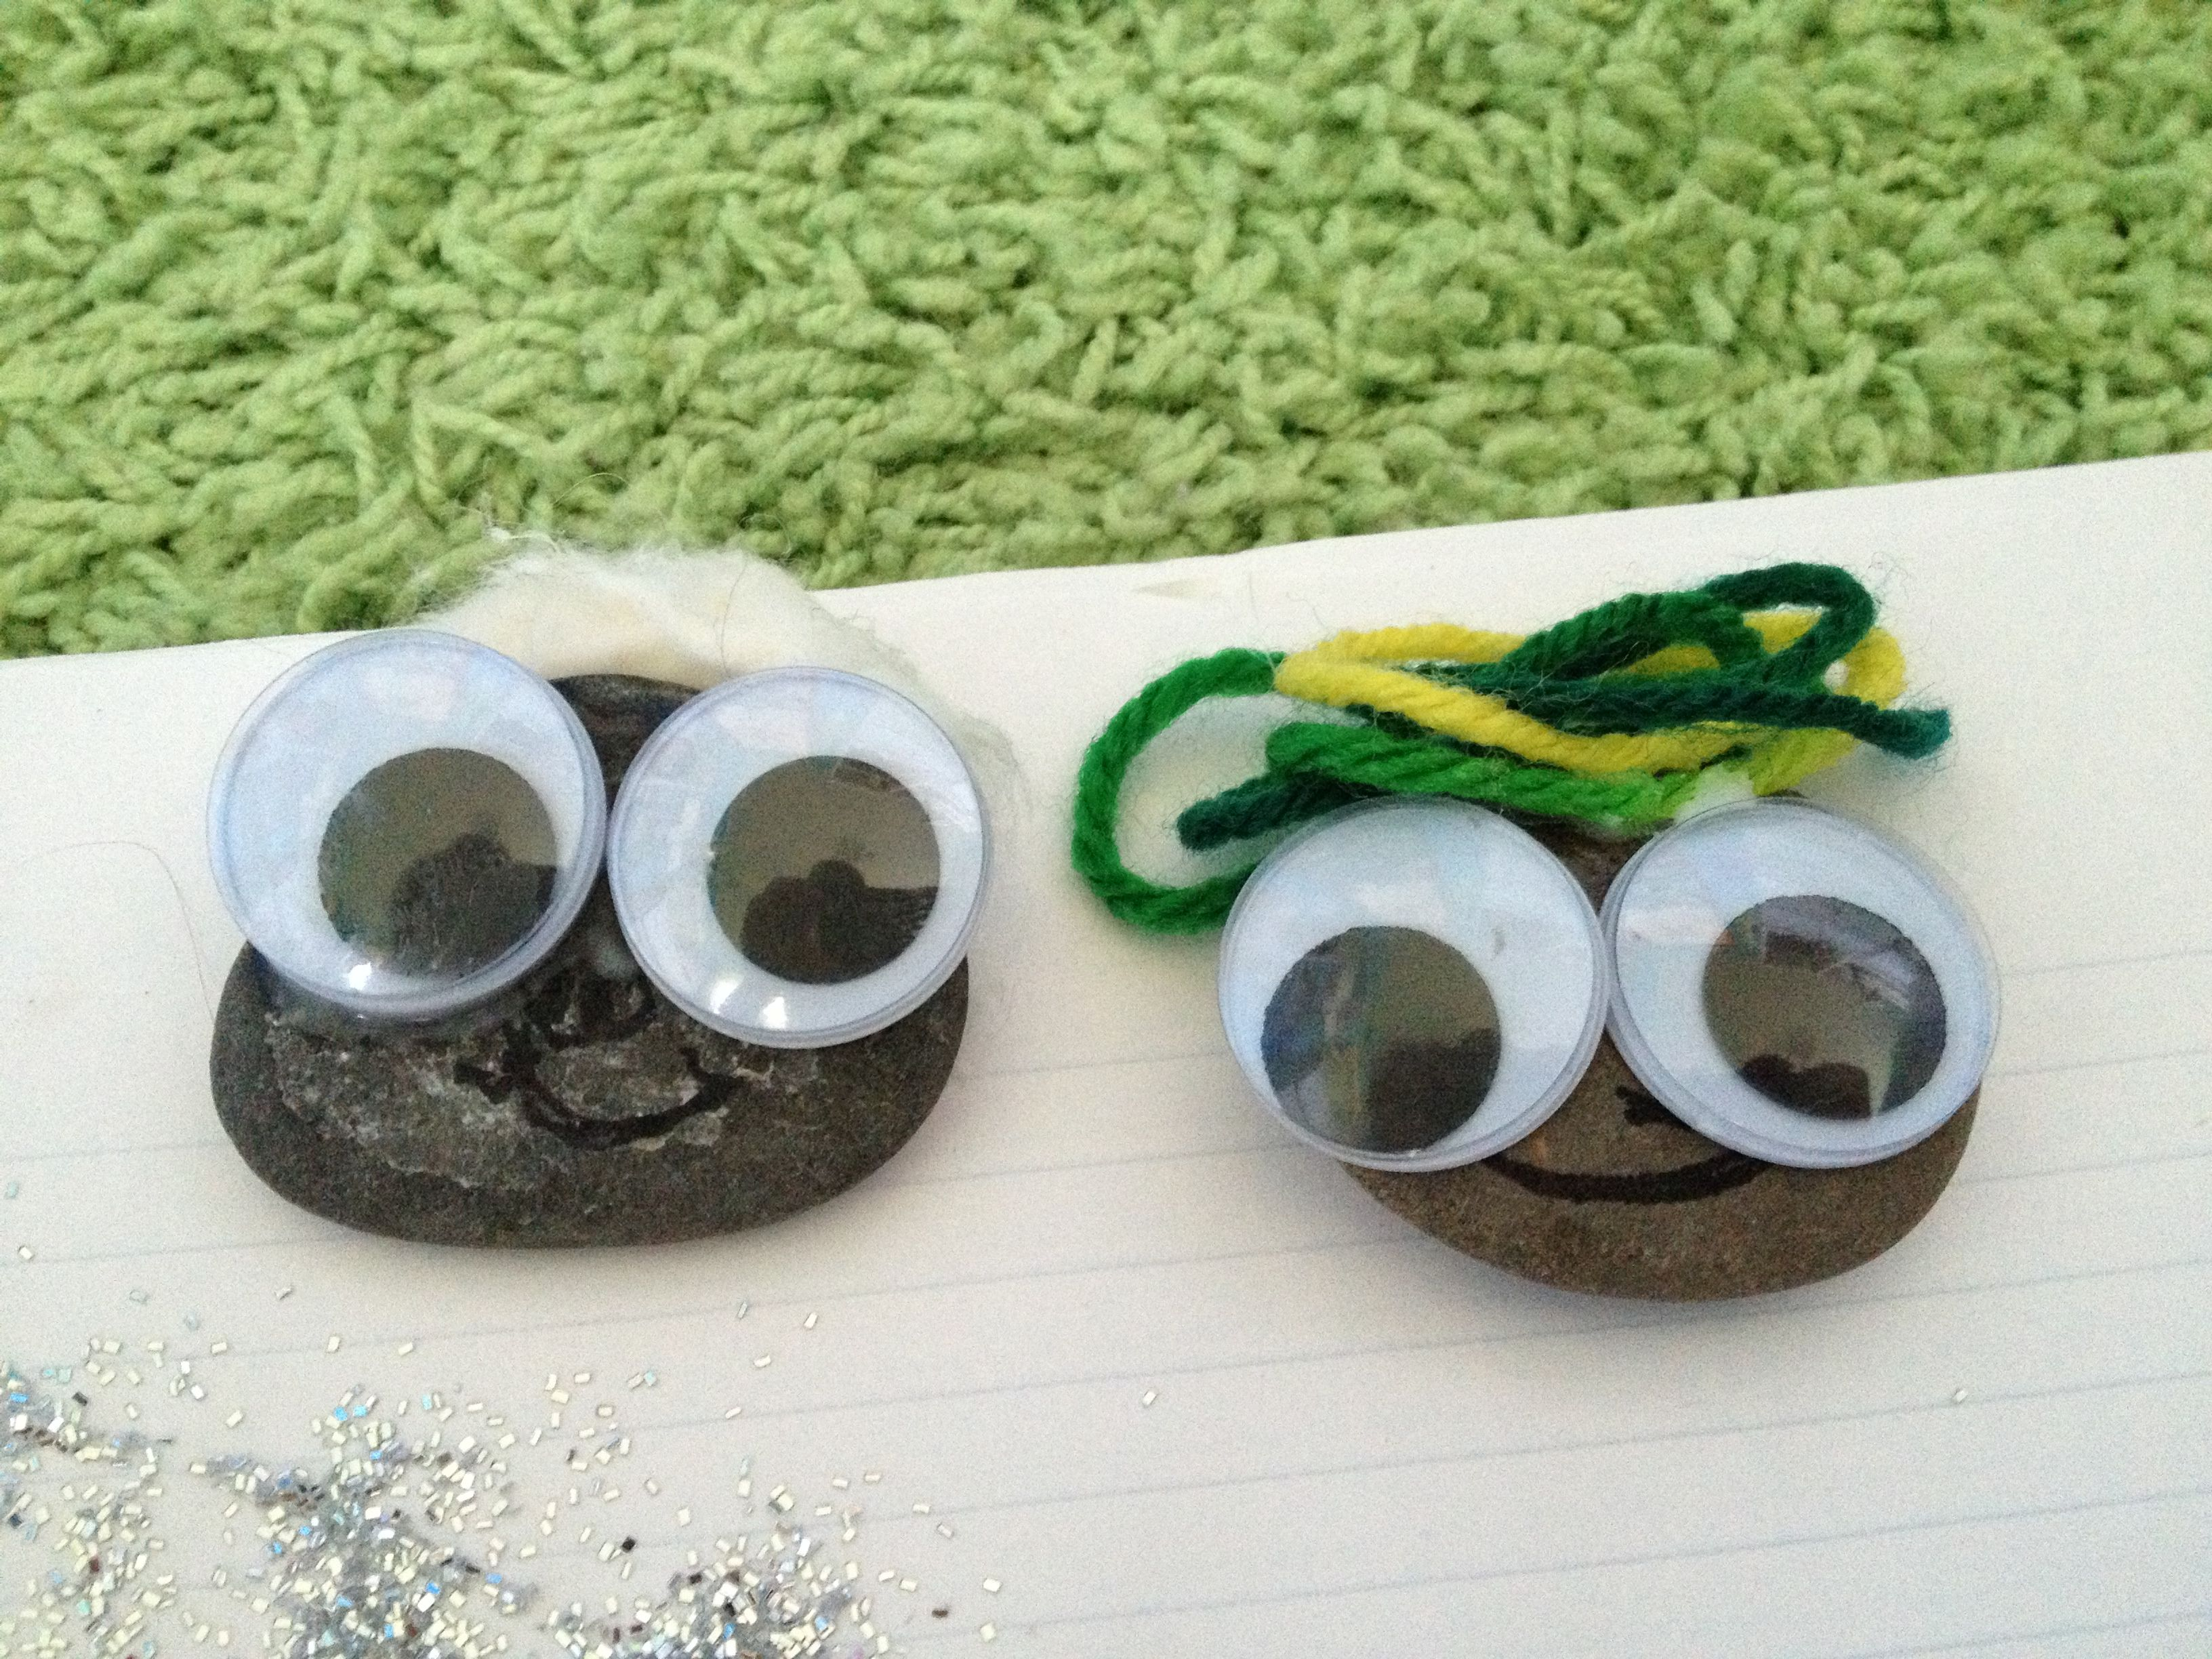 For A Fun But Stupid Craft Glue Eye Balls On Rocks You Can